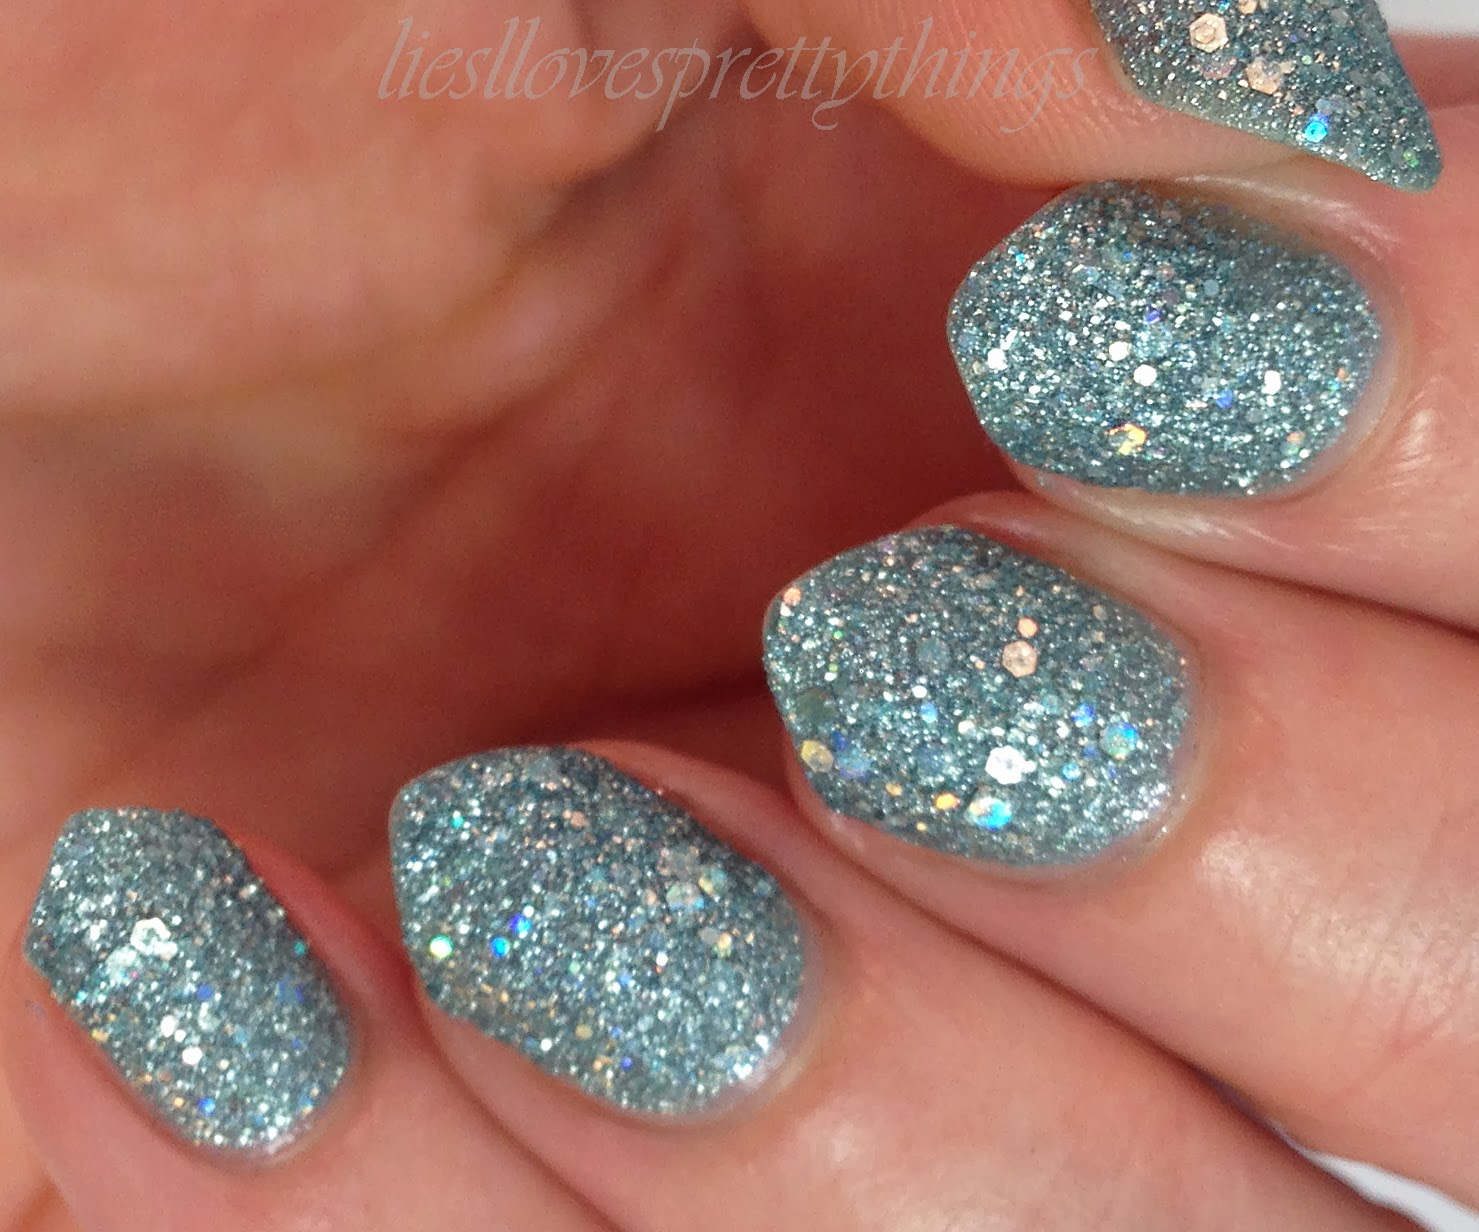 Zoya Magical PixieDusts Vega swatch and review